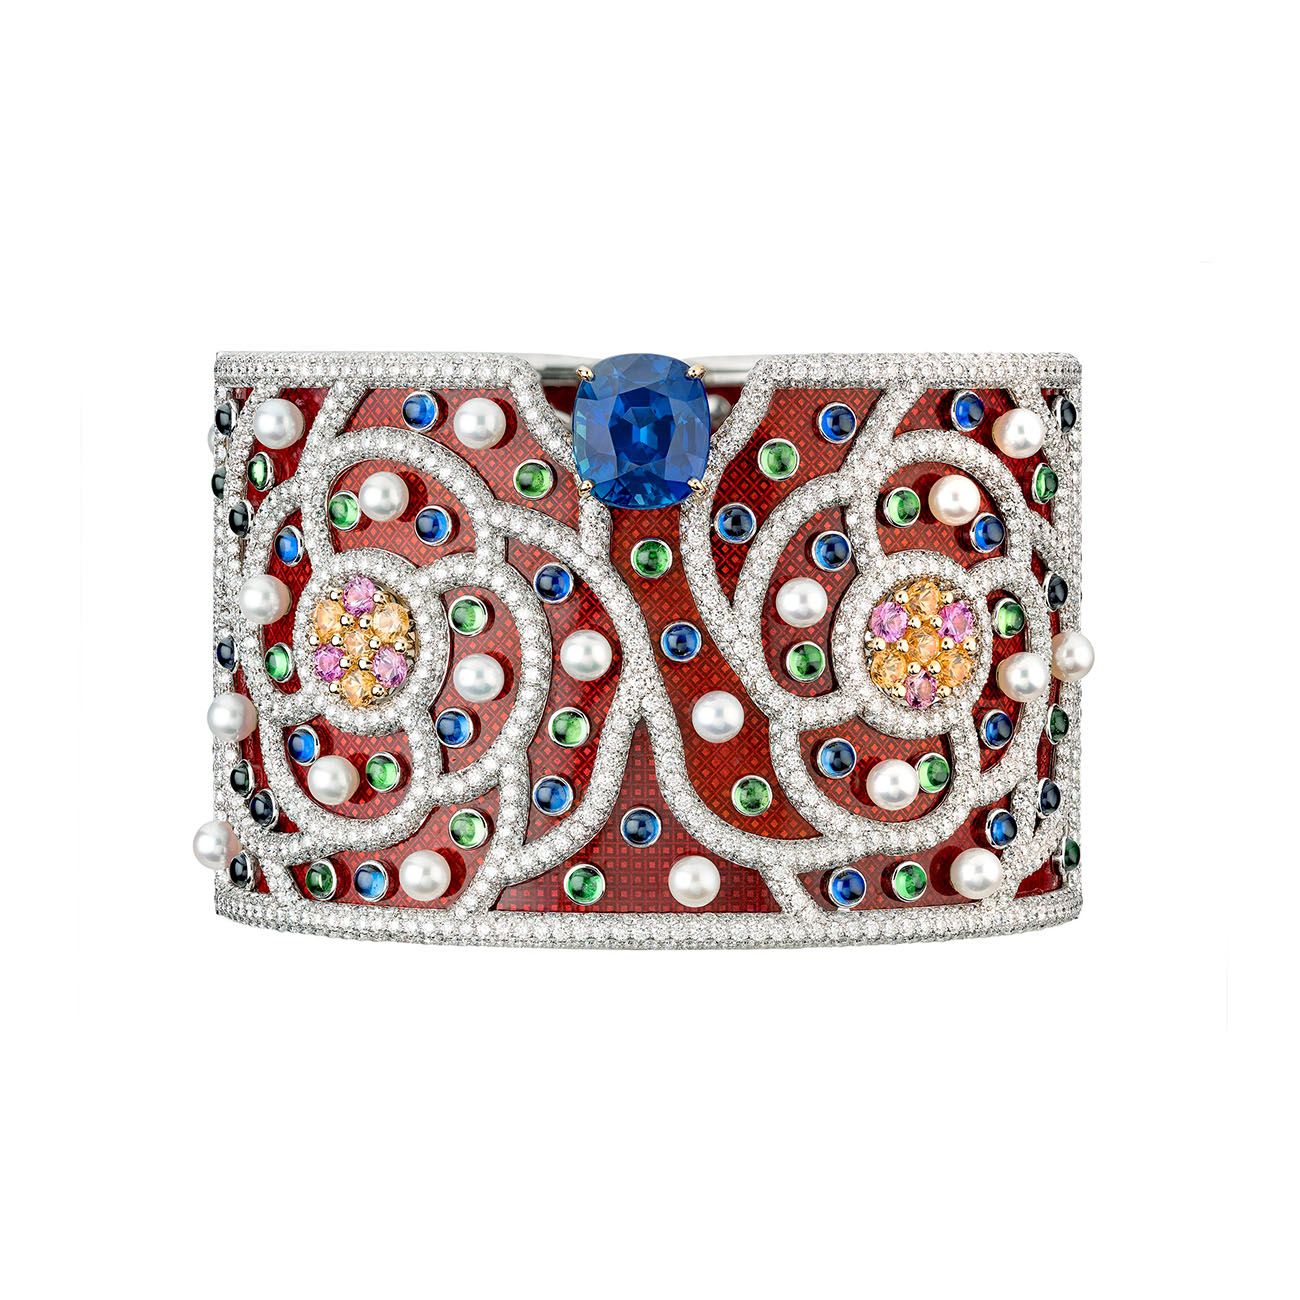 Chanel High Jewelry Collection LE PARIS RUSSE DE CHANEL Folklore Cuff